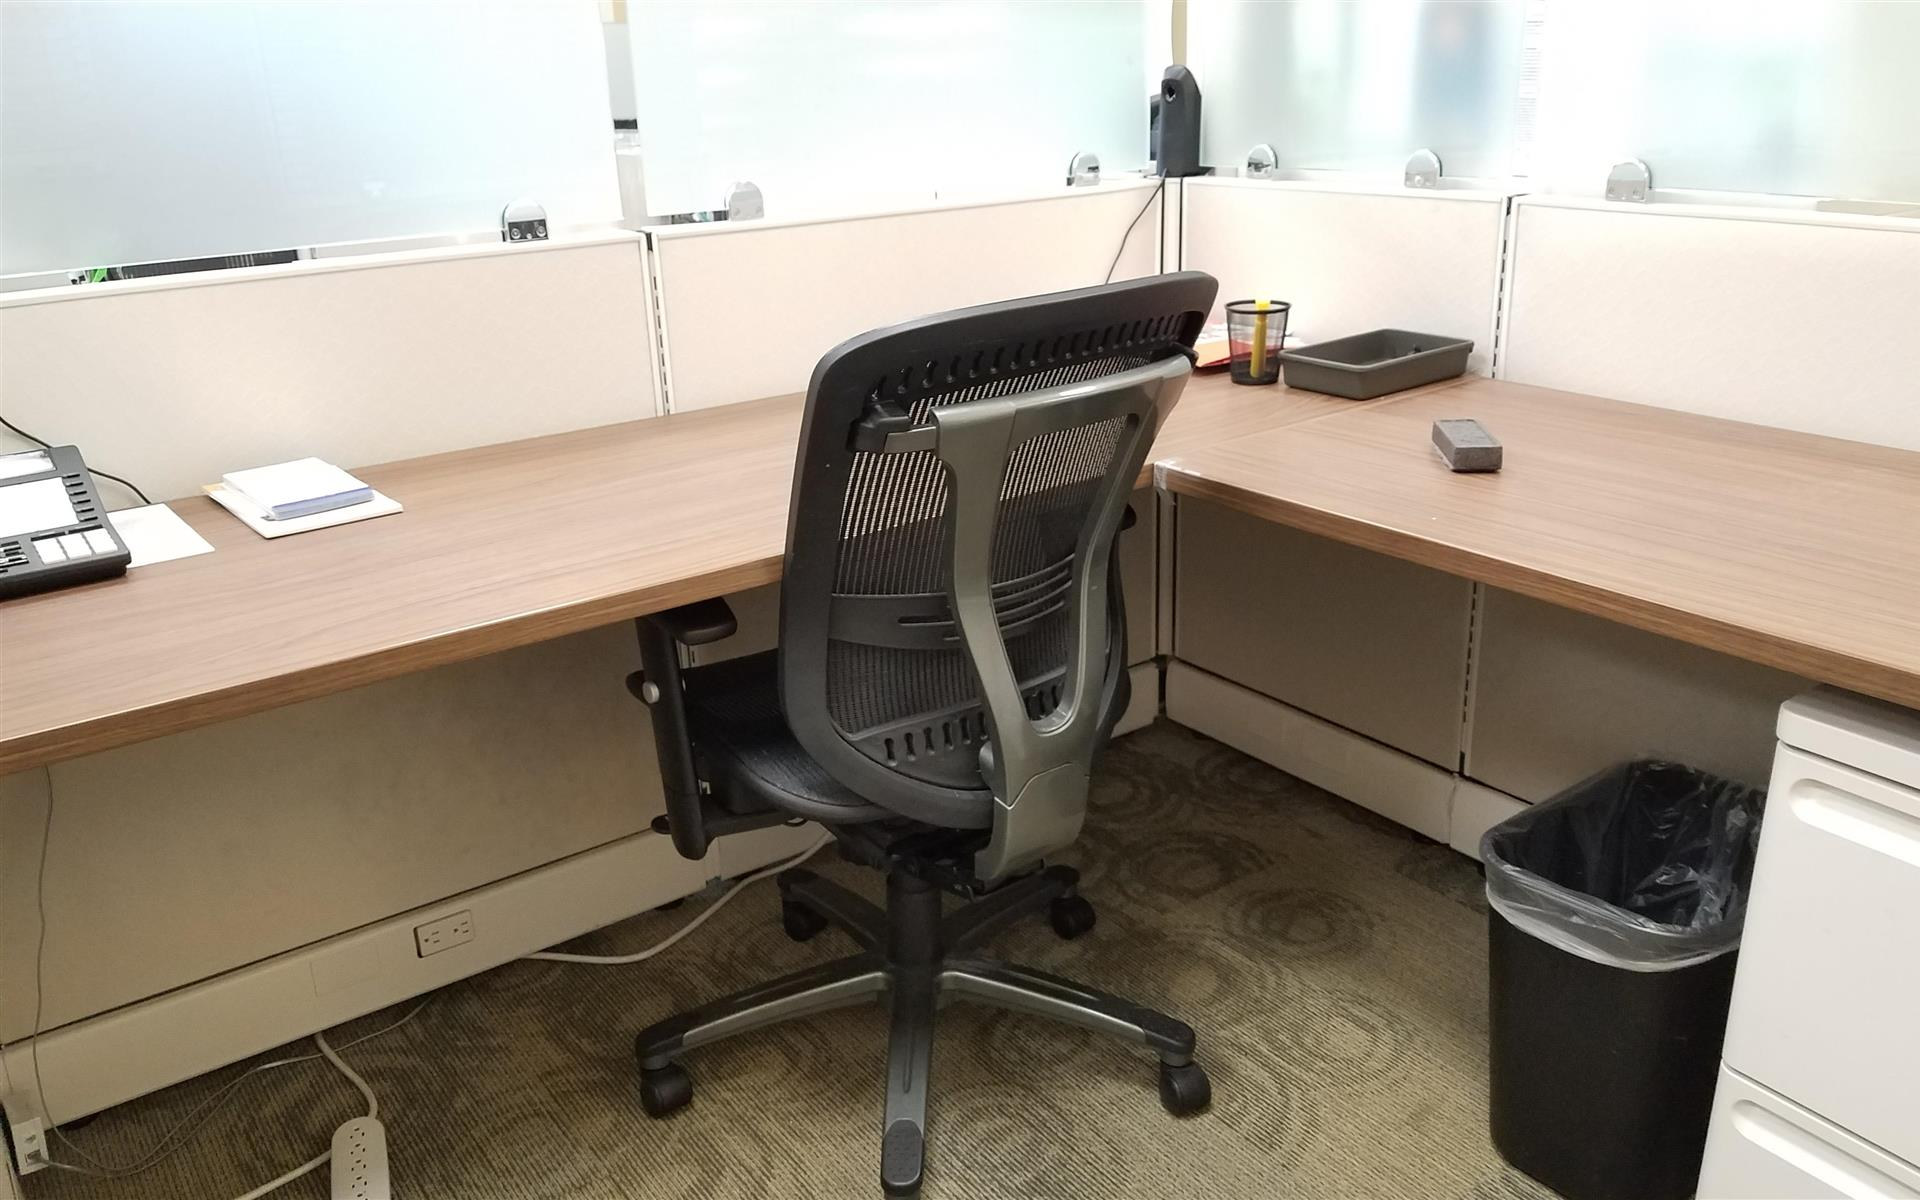 Better Homes and Gardens Real Estate- El Cerrito Office - Dedicated Desk For One